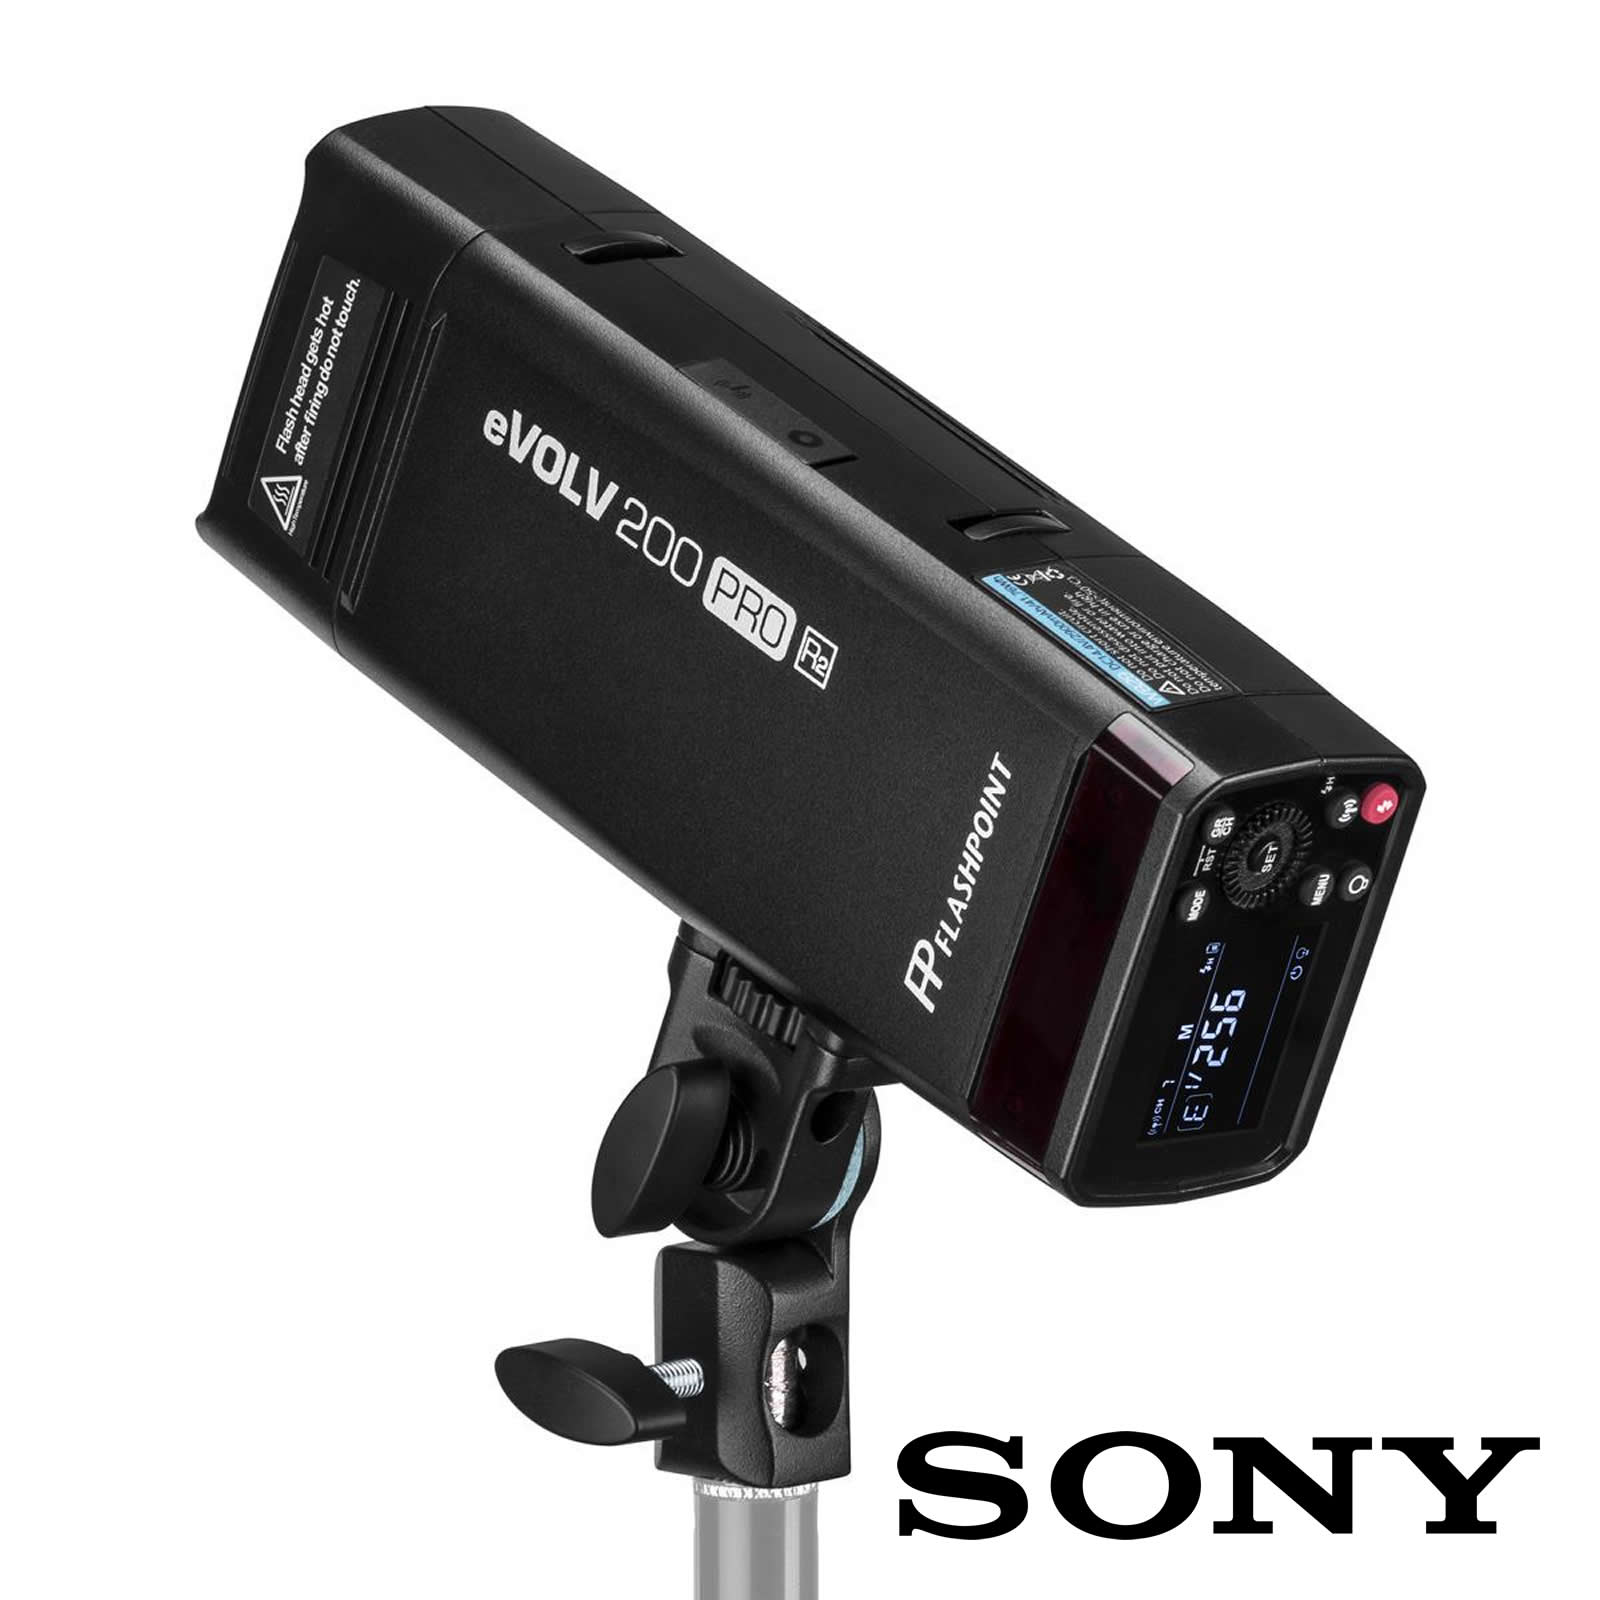 Flashpoint EVOLV 200 Pro TTL Pocket Flash Kit (Sony)